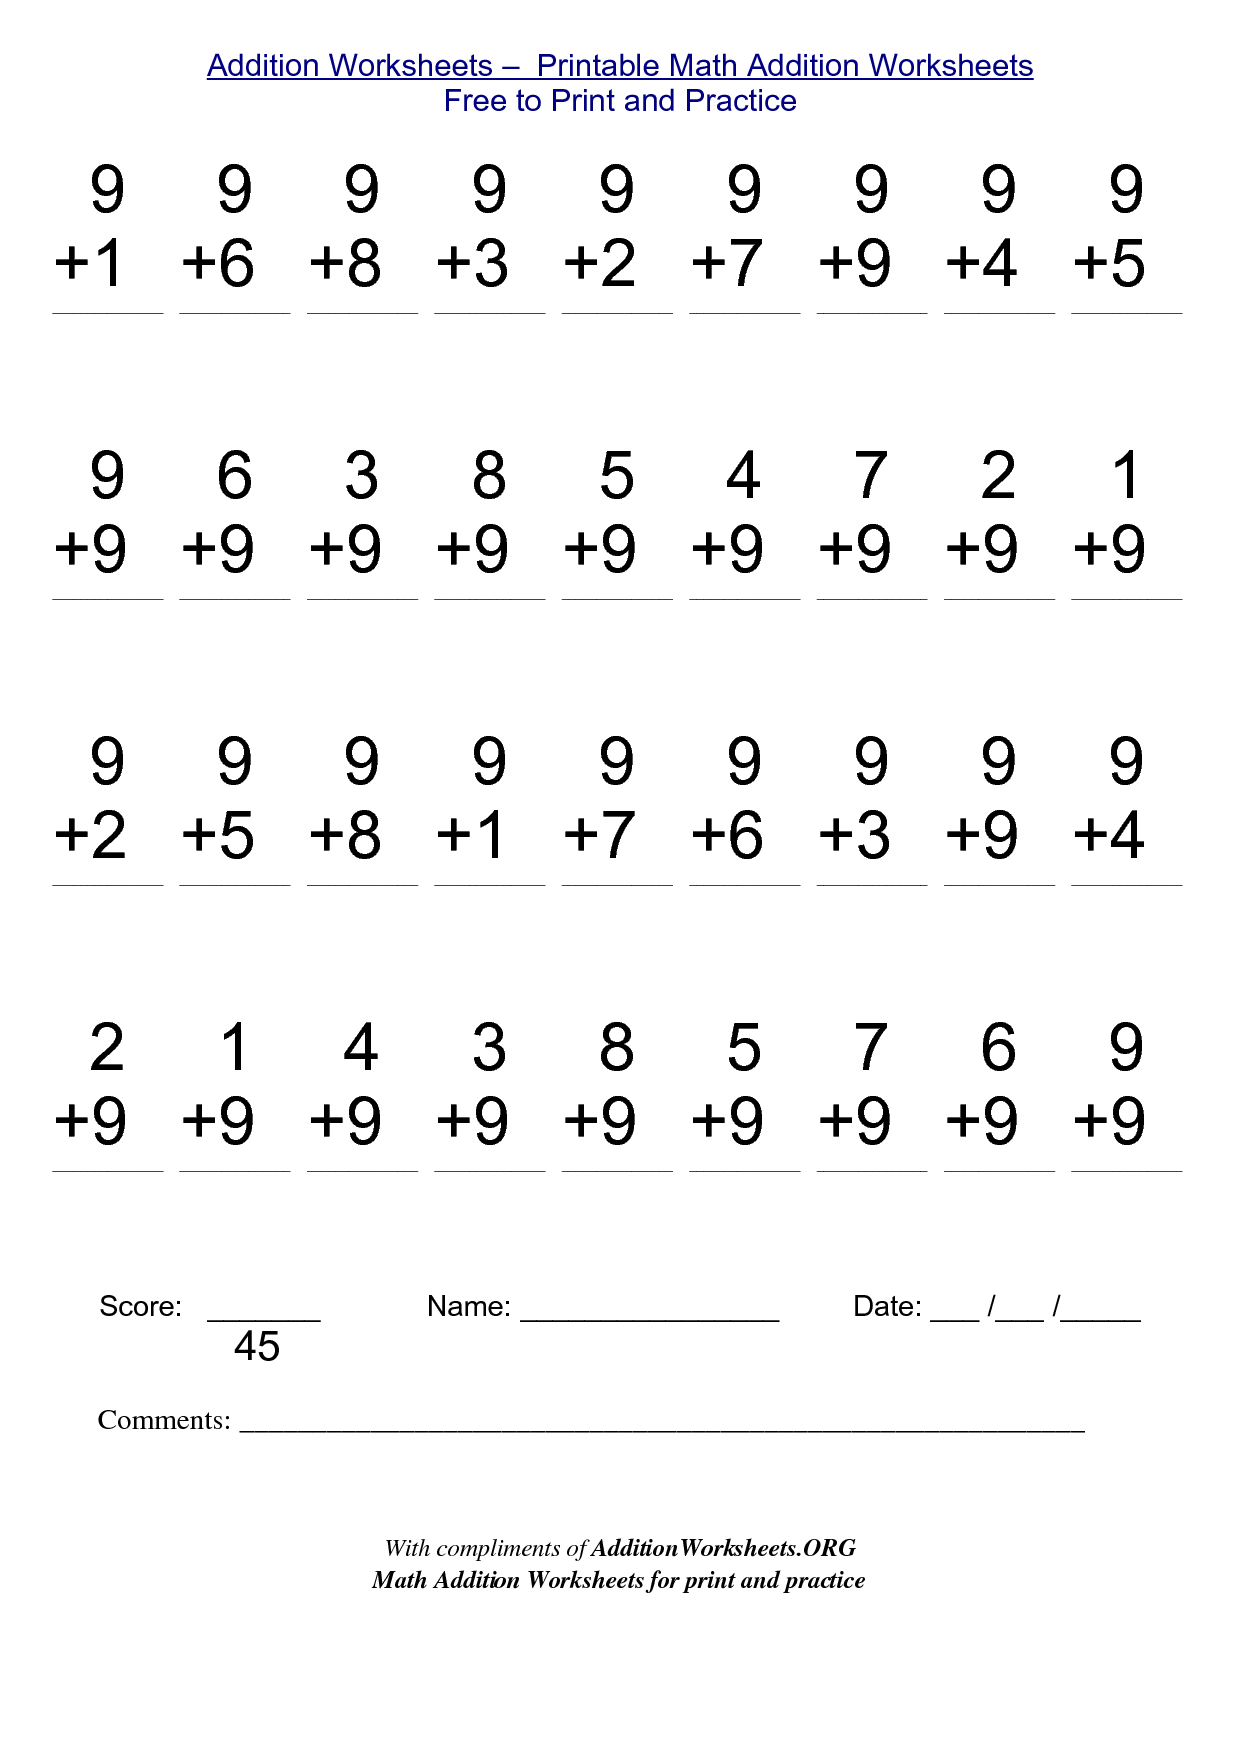 Free Worksheet 100 Addition Facts 120 For Educators – Math Facts to 20 Worksheets